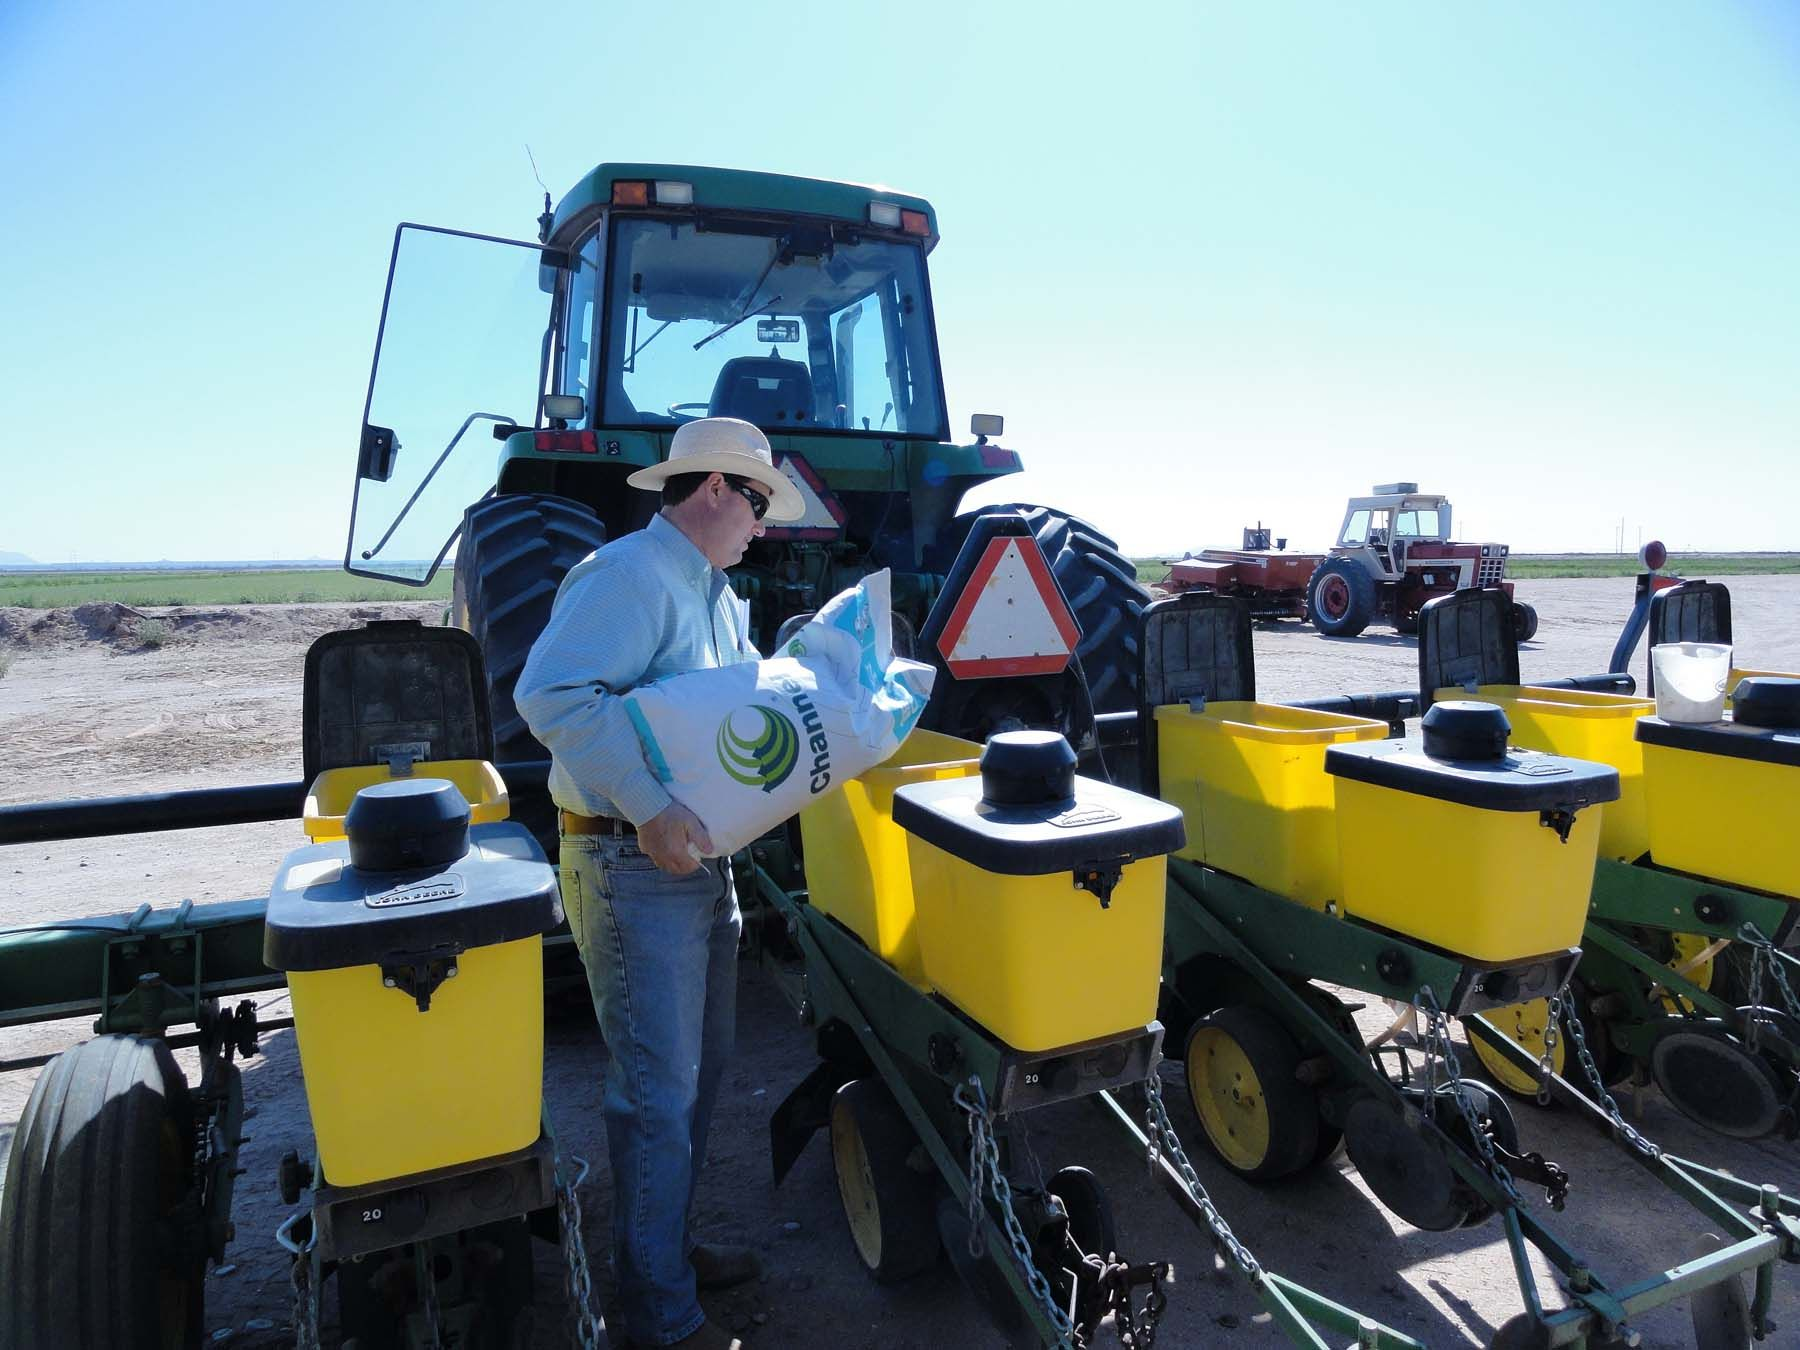 Bryan Hartman of Hartman Farms fills up his planter with seed. Our Arizona farmers and ranchers are busy growing things year around.